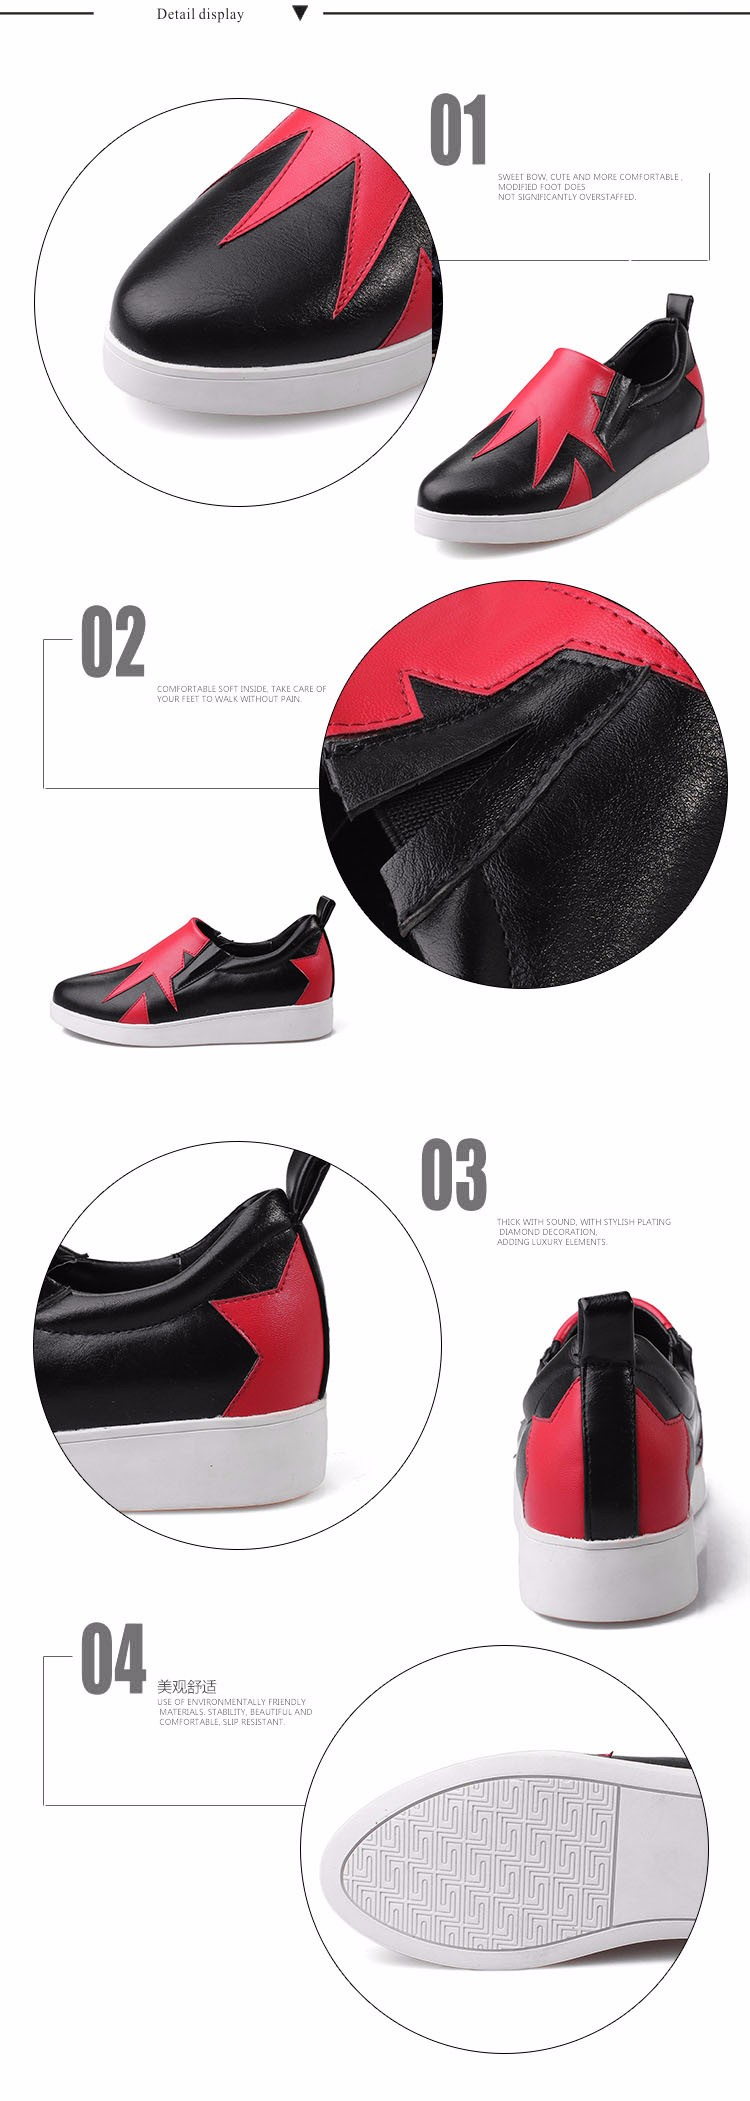 NEW 2016 Spring Fall Brand Women Snakes Loafers Flats Shoes Woman Casual Slip on Platform a Pedal Lazy Single Shoes M3.5